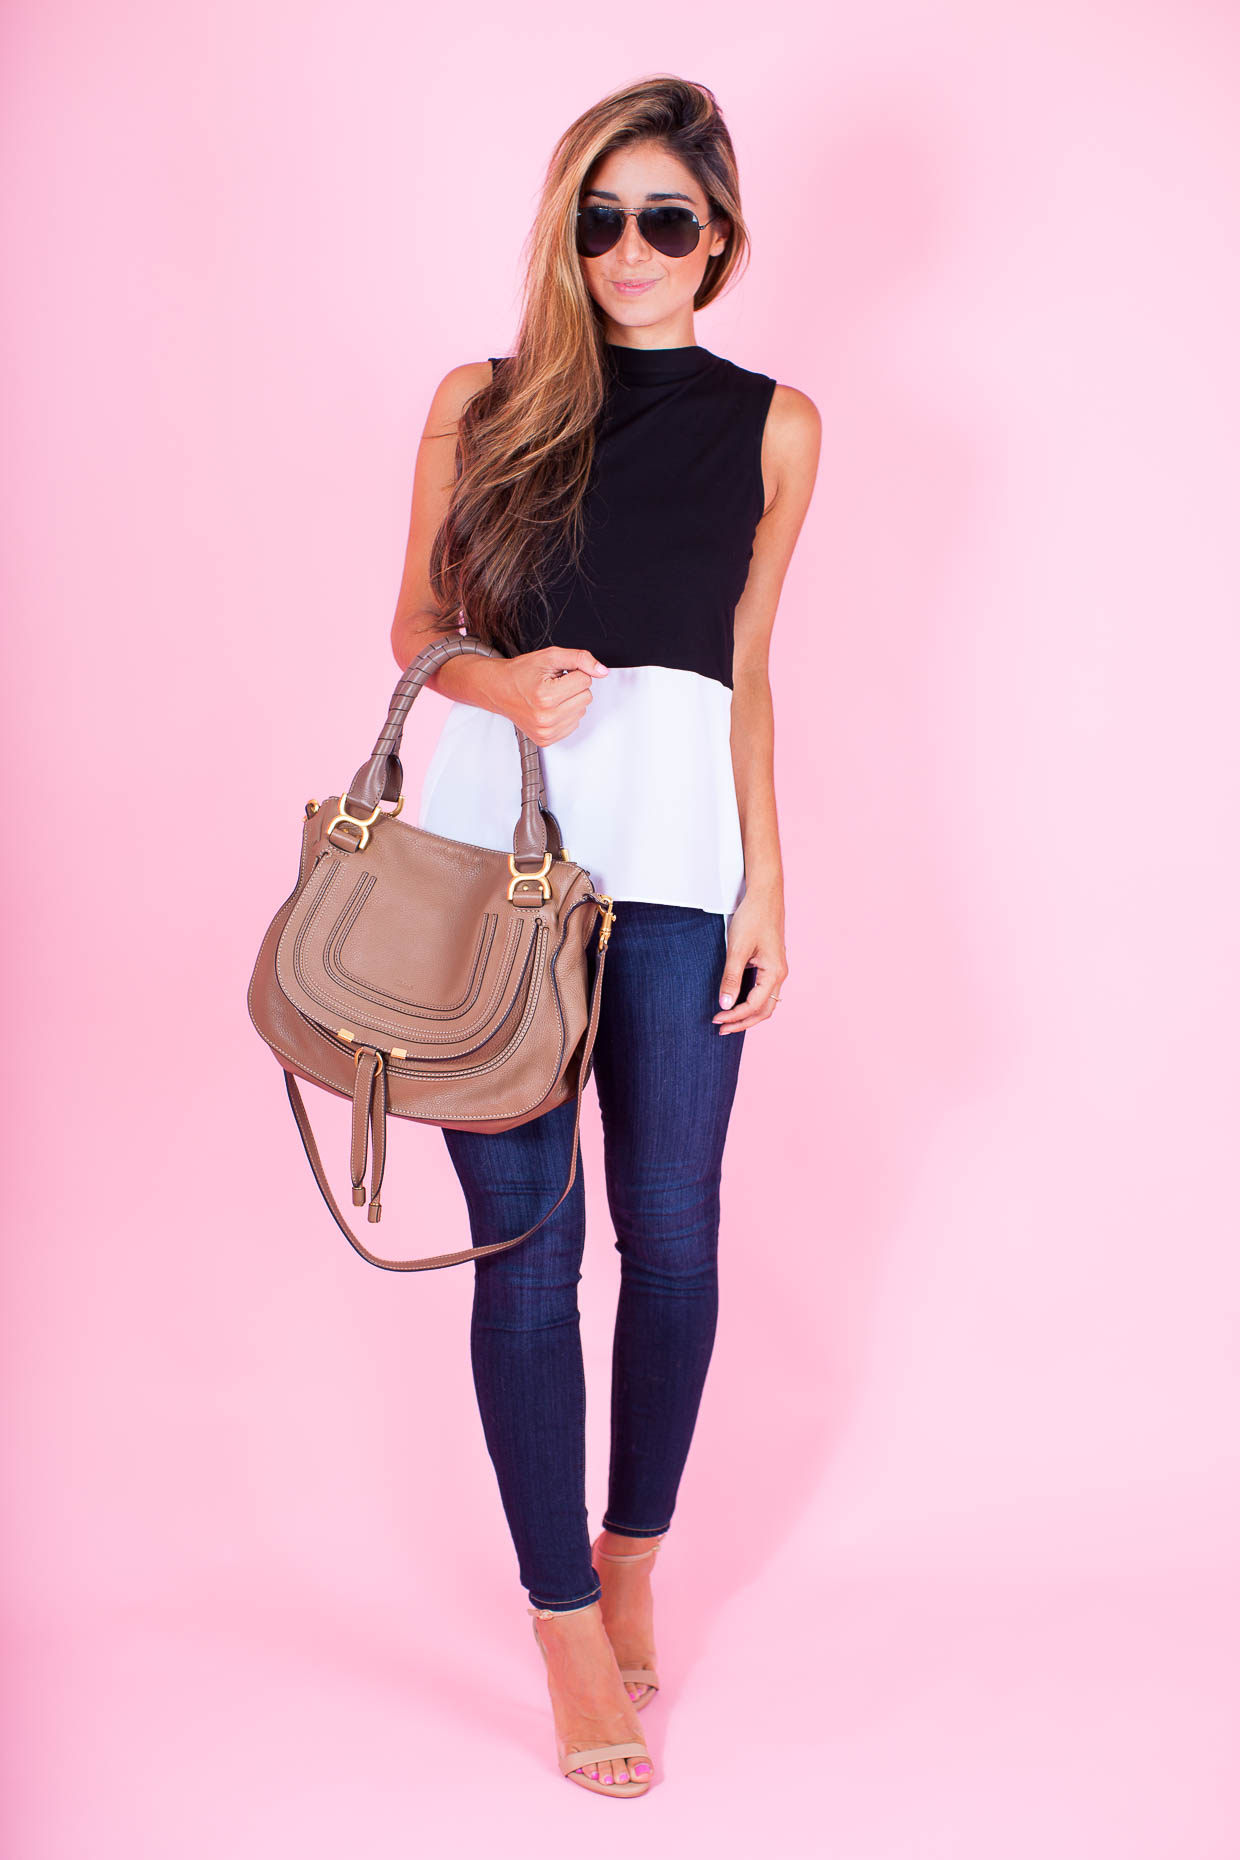 Fashion Blogger The Darling Detail is wearing a 1.State Colorblock Tank wiht PAIGE 'Transcend - Verdugo' Ankle Skinny Jeans, Steve Madden 'Stecy' Sandals, and a Chloe 'Marcie - Small' Leather Satchel.